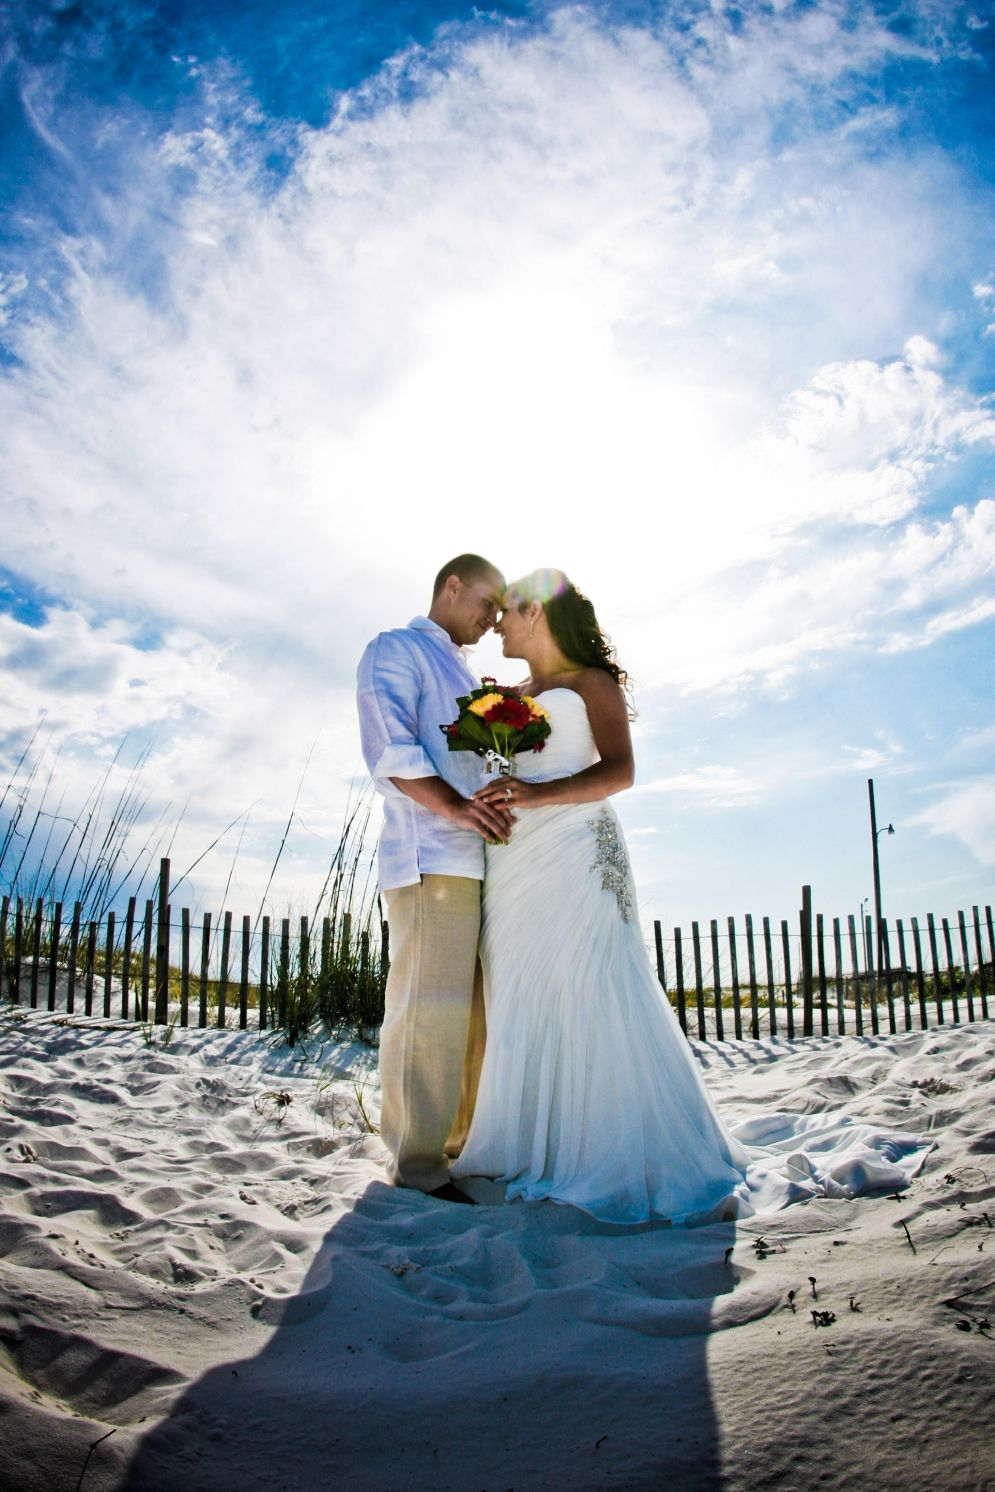 walking on sunshine Orange Beach Al wedding @RenaissancePortraits ...